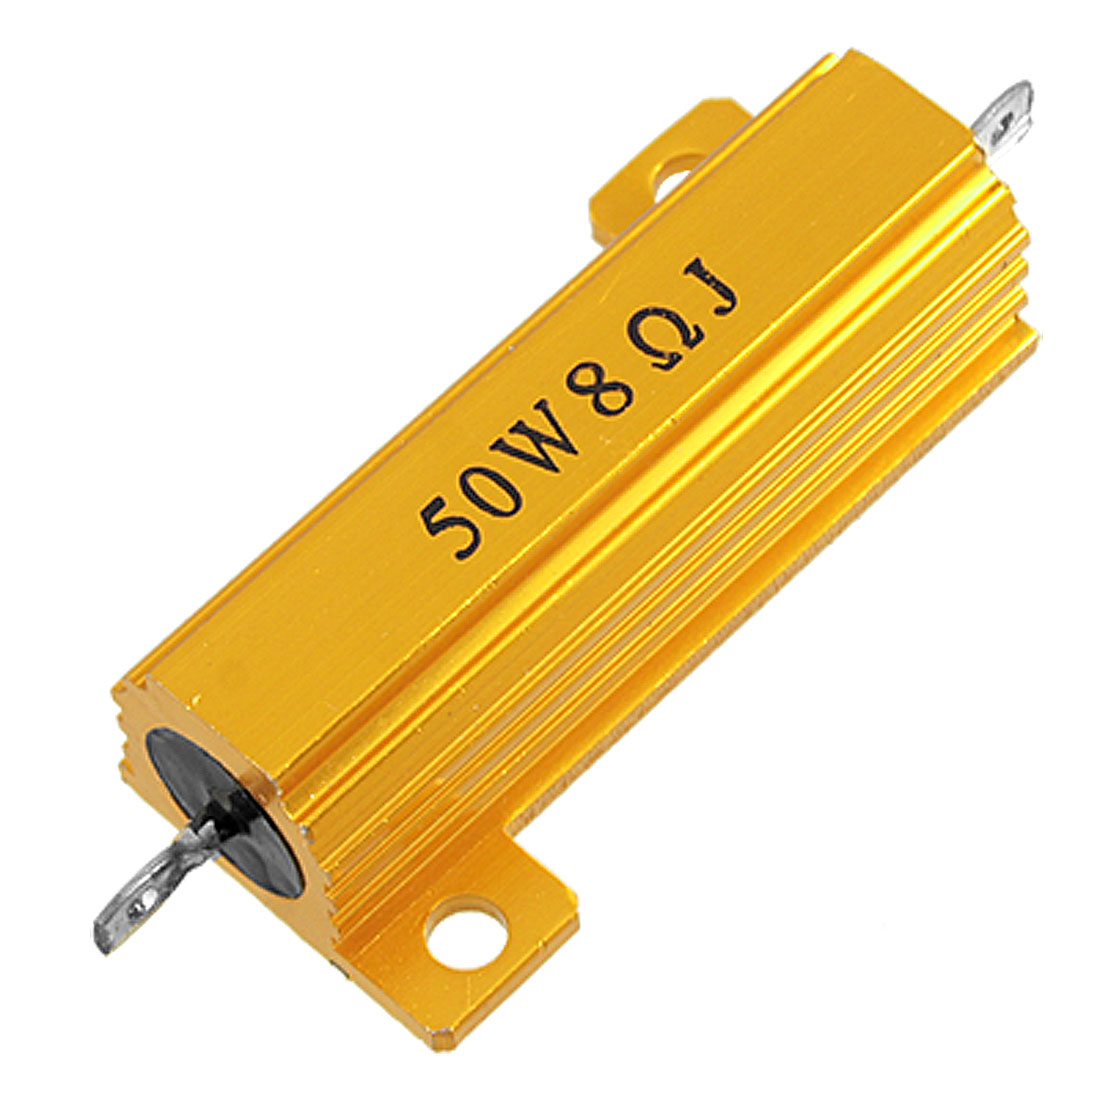 50 Watt 8 Ohm 5% Aluminum Housed Wirewound Power Resistor Gold Tone